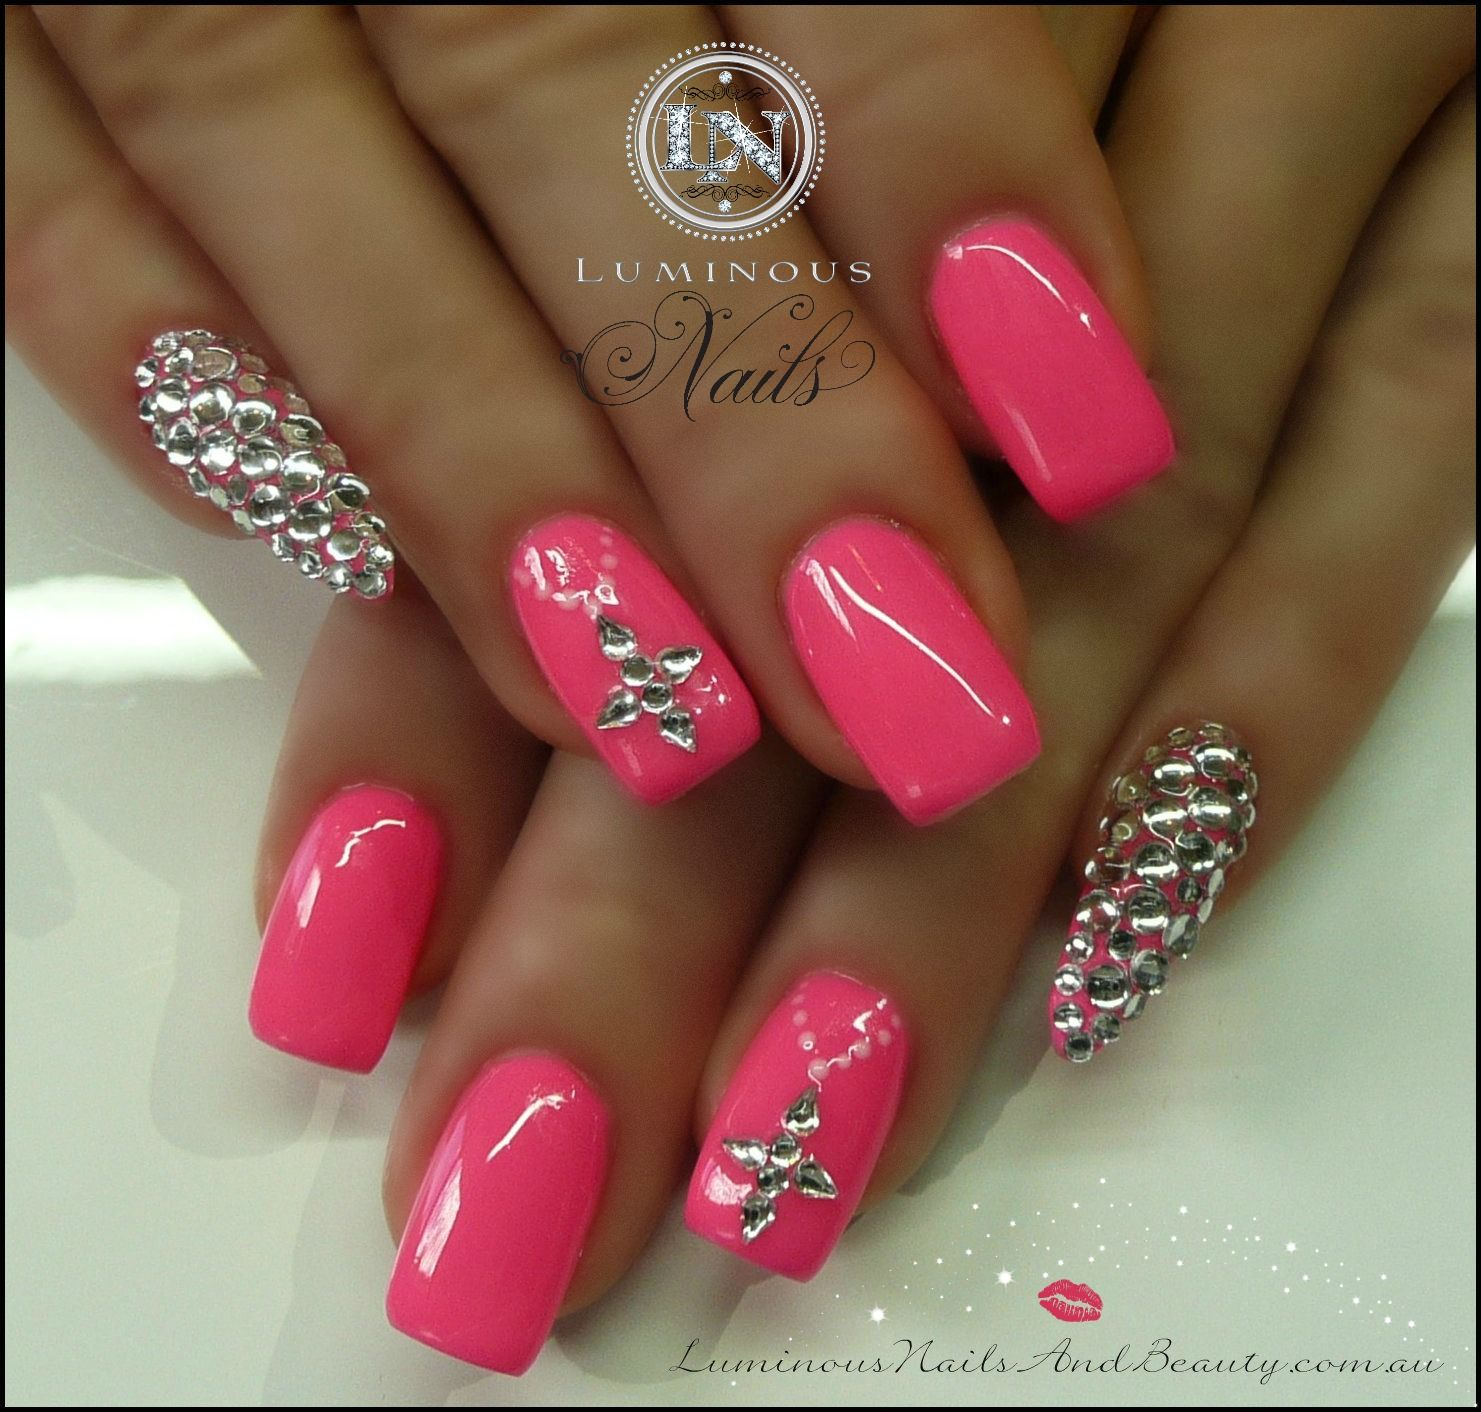 De roze kleur is mooi - Nagels | Pinterest - Nagel, Gel acryl nagels ...